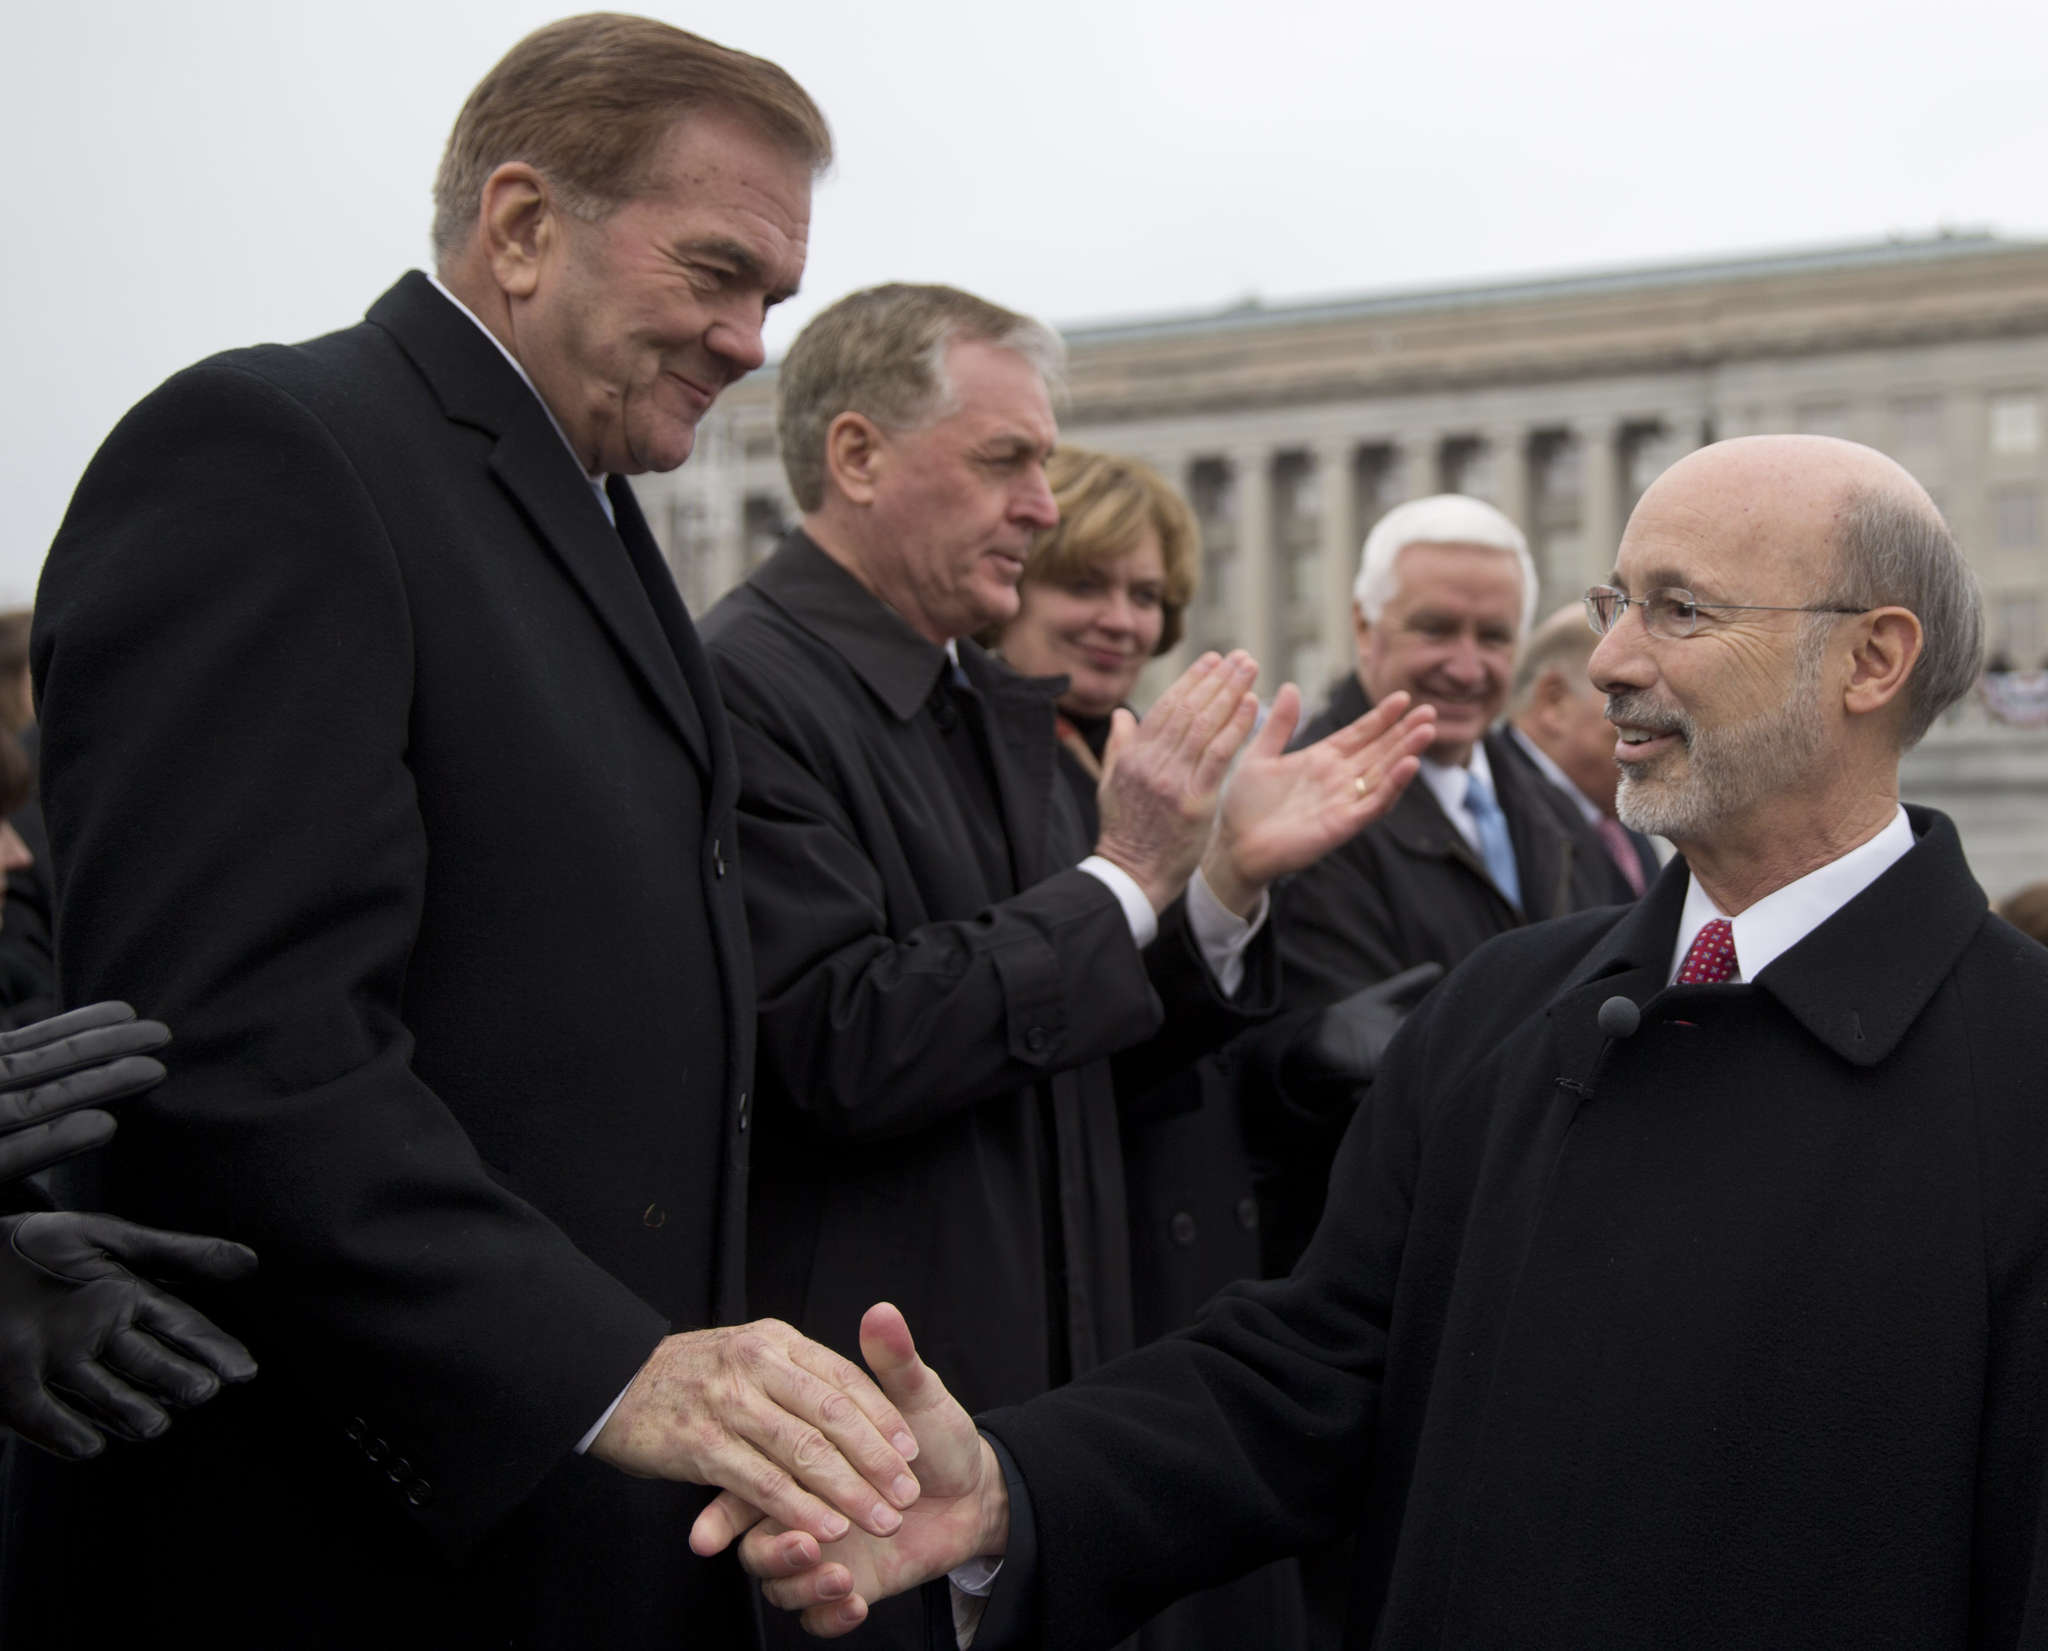 That´s newly minted Gov. Wolf a year ago, shaking hands with former Gov. Tom Ridge.